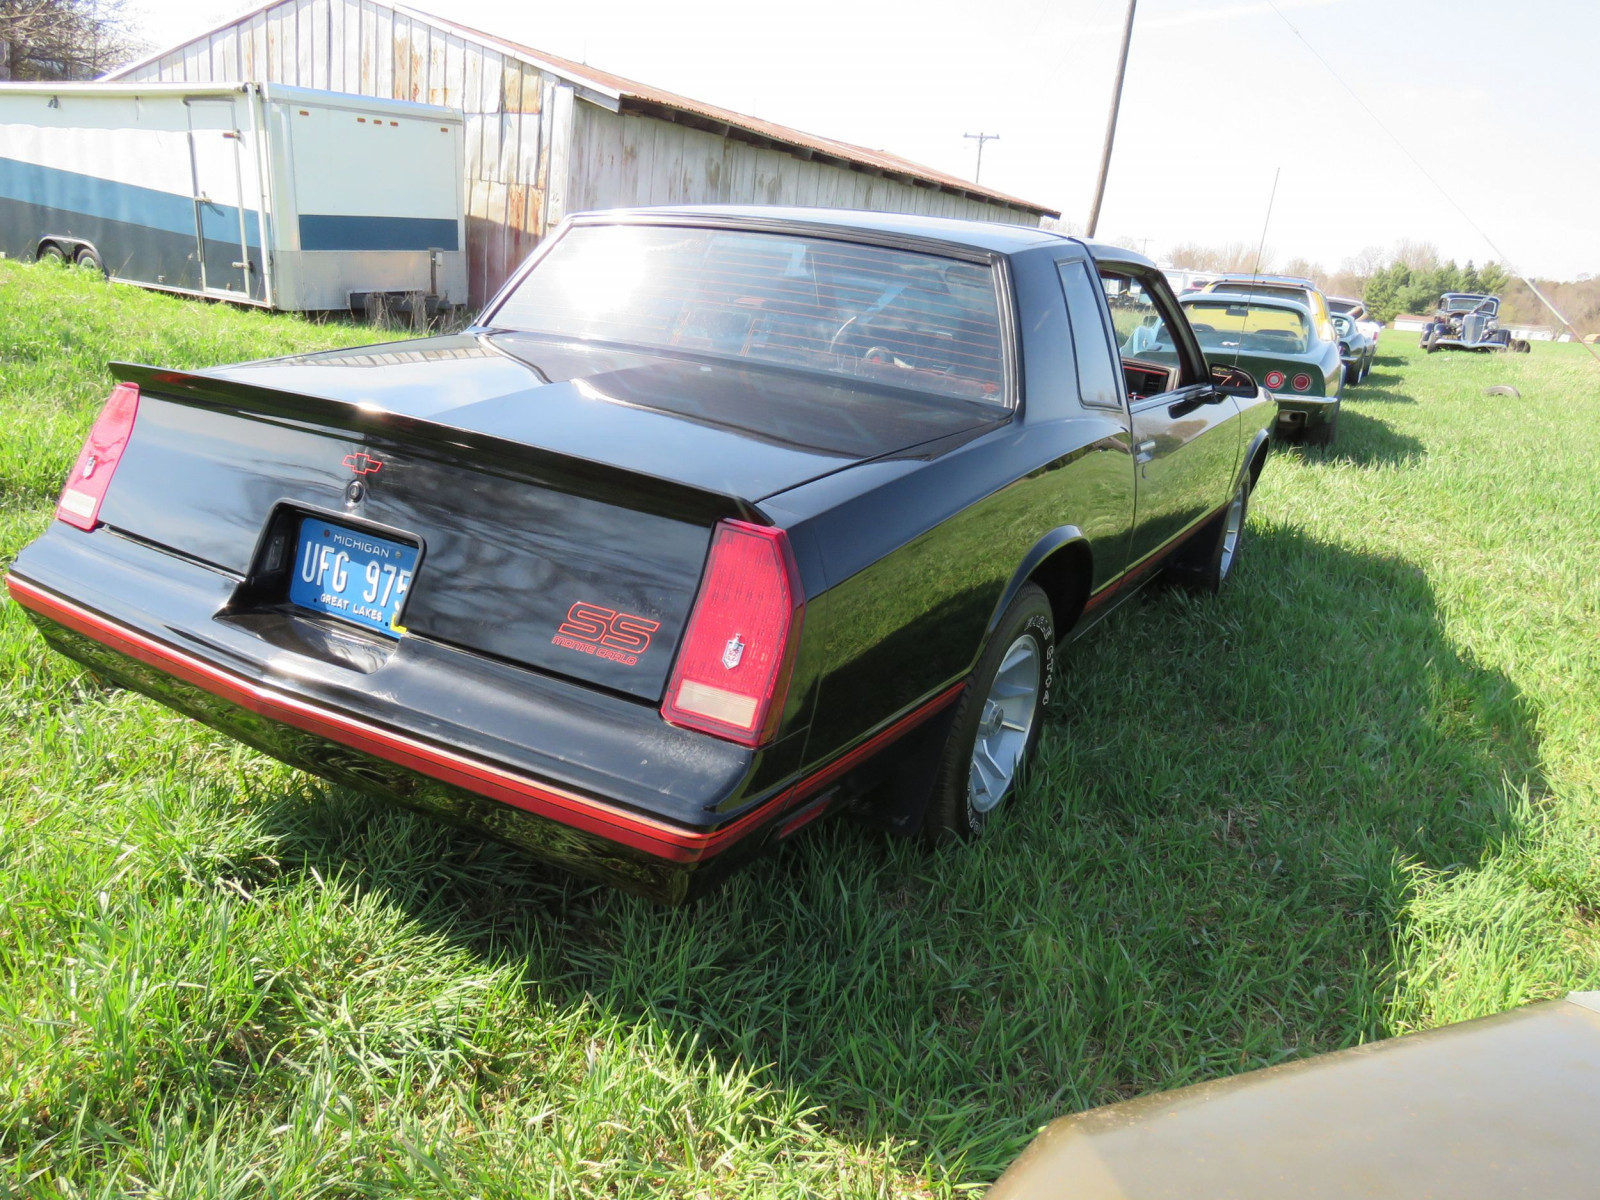 1987 Chevrolet Monte Carlo SS - Image 4